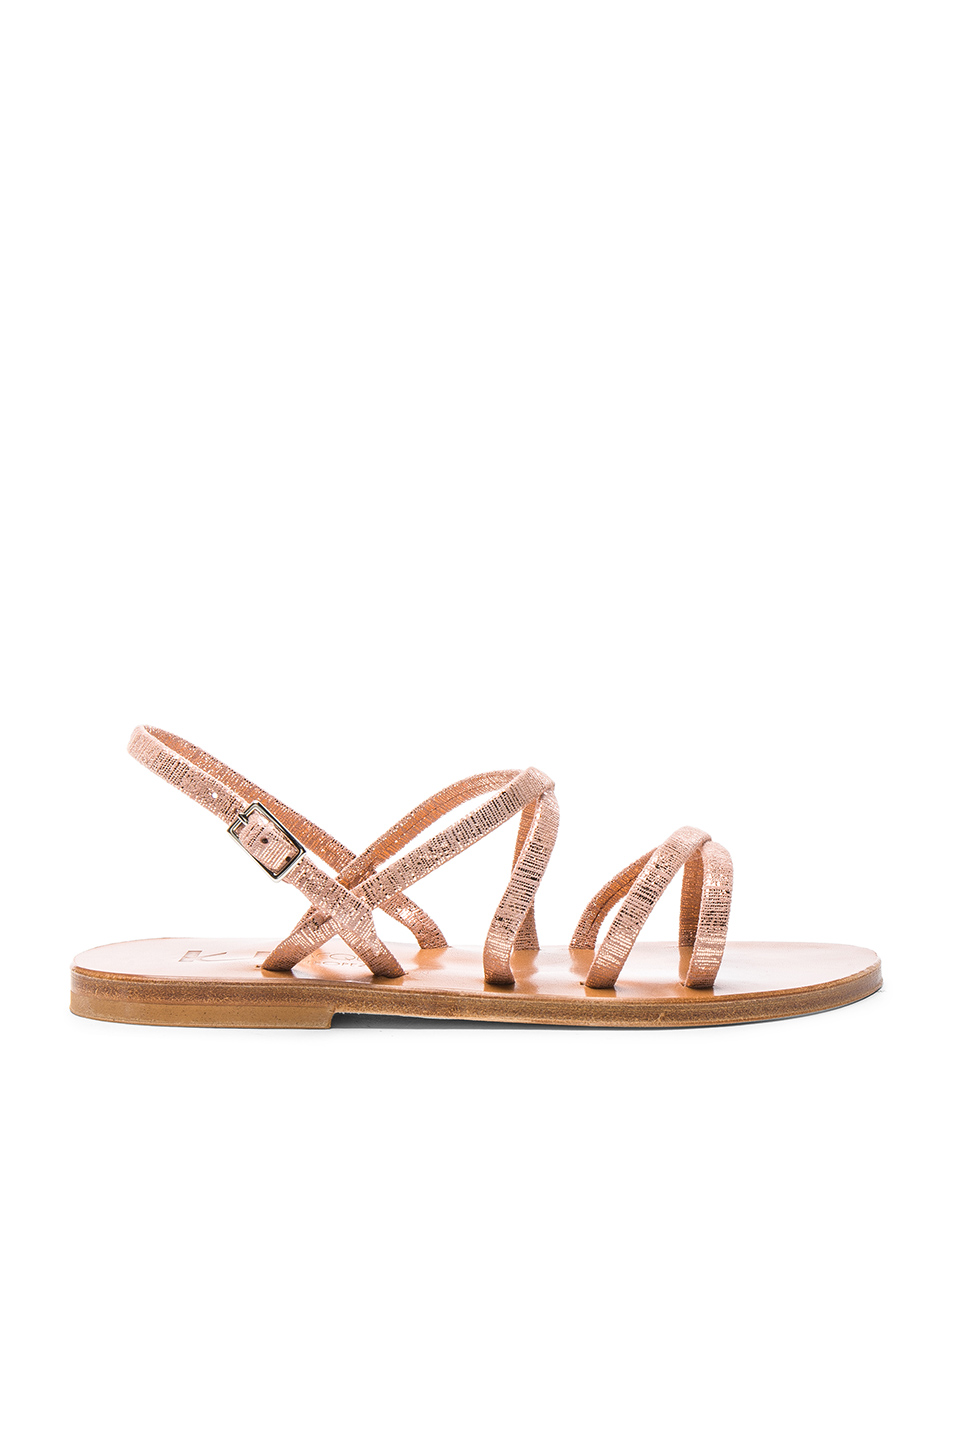 K Jacques Metallic Suede Batura Sandals in Metallic,Pink